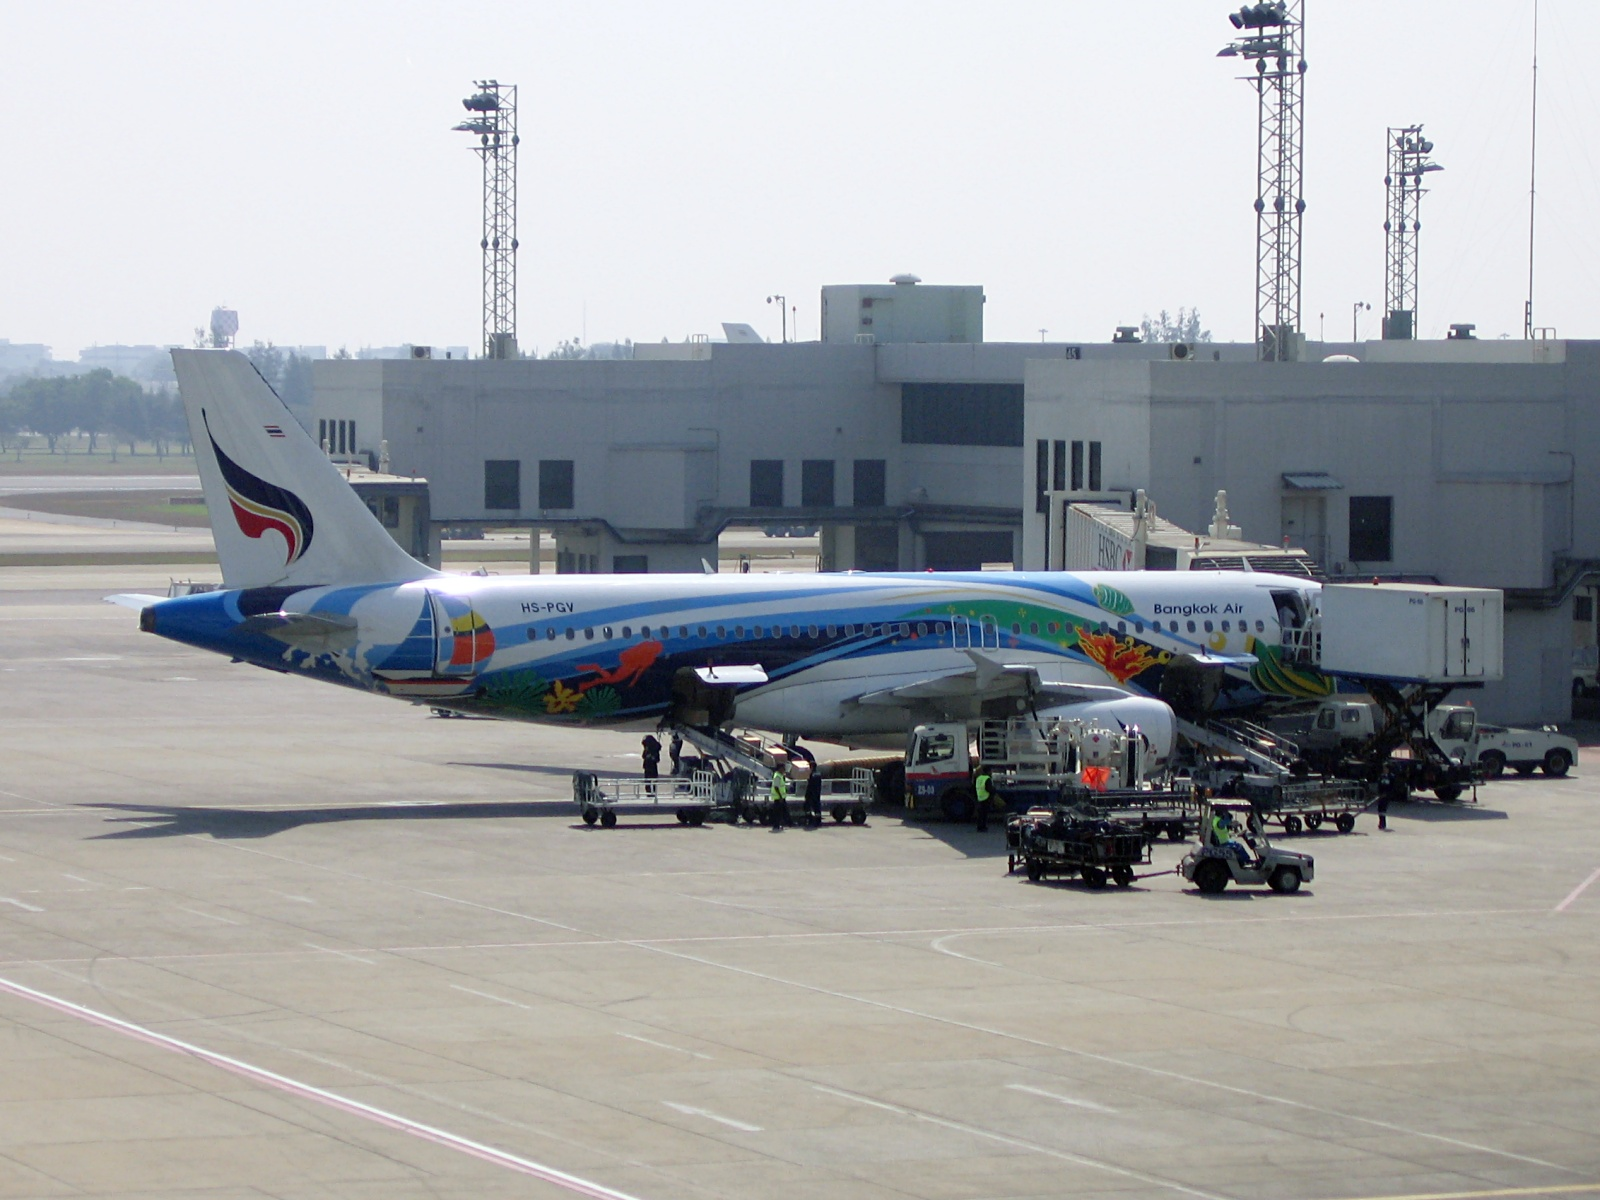 Depiction of Bangkok Airways